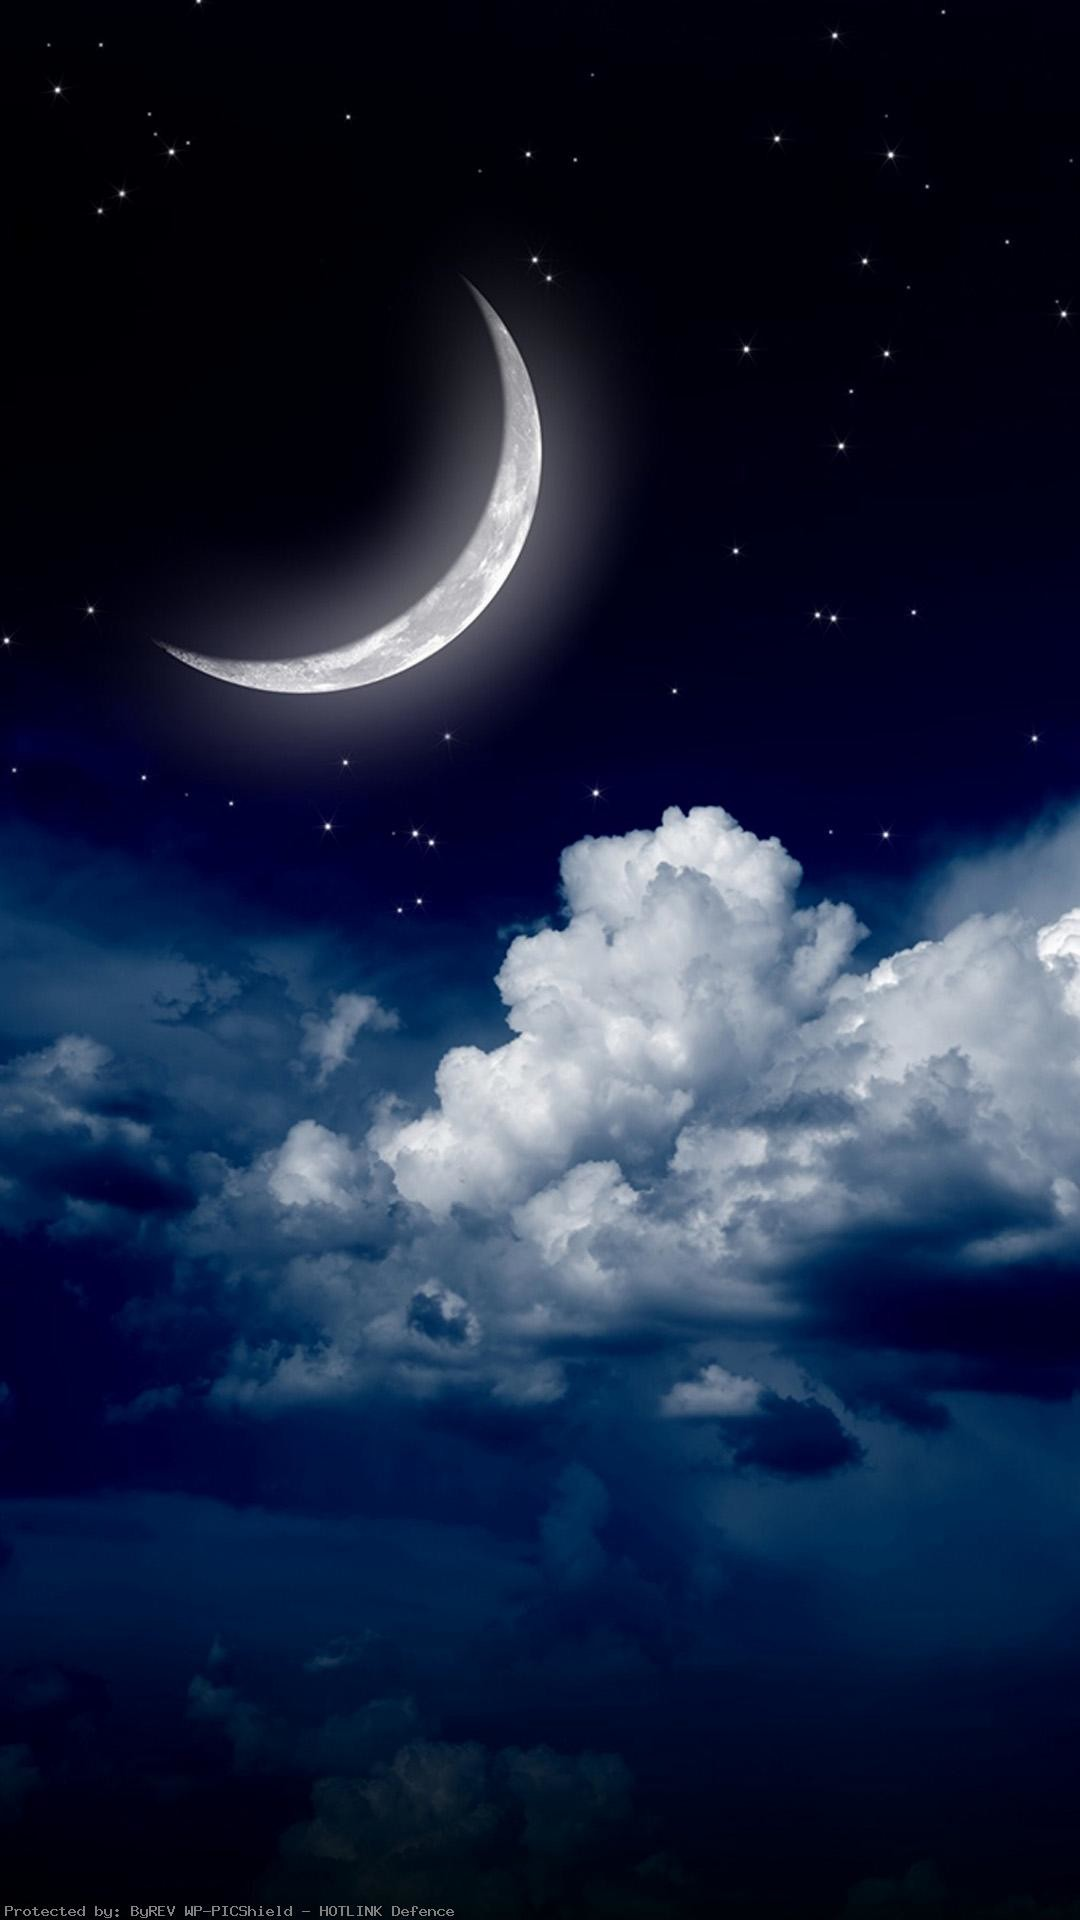 Sky-clouds-moon-iPhone-of-night-stars-view-